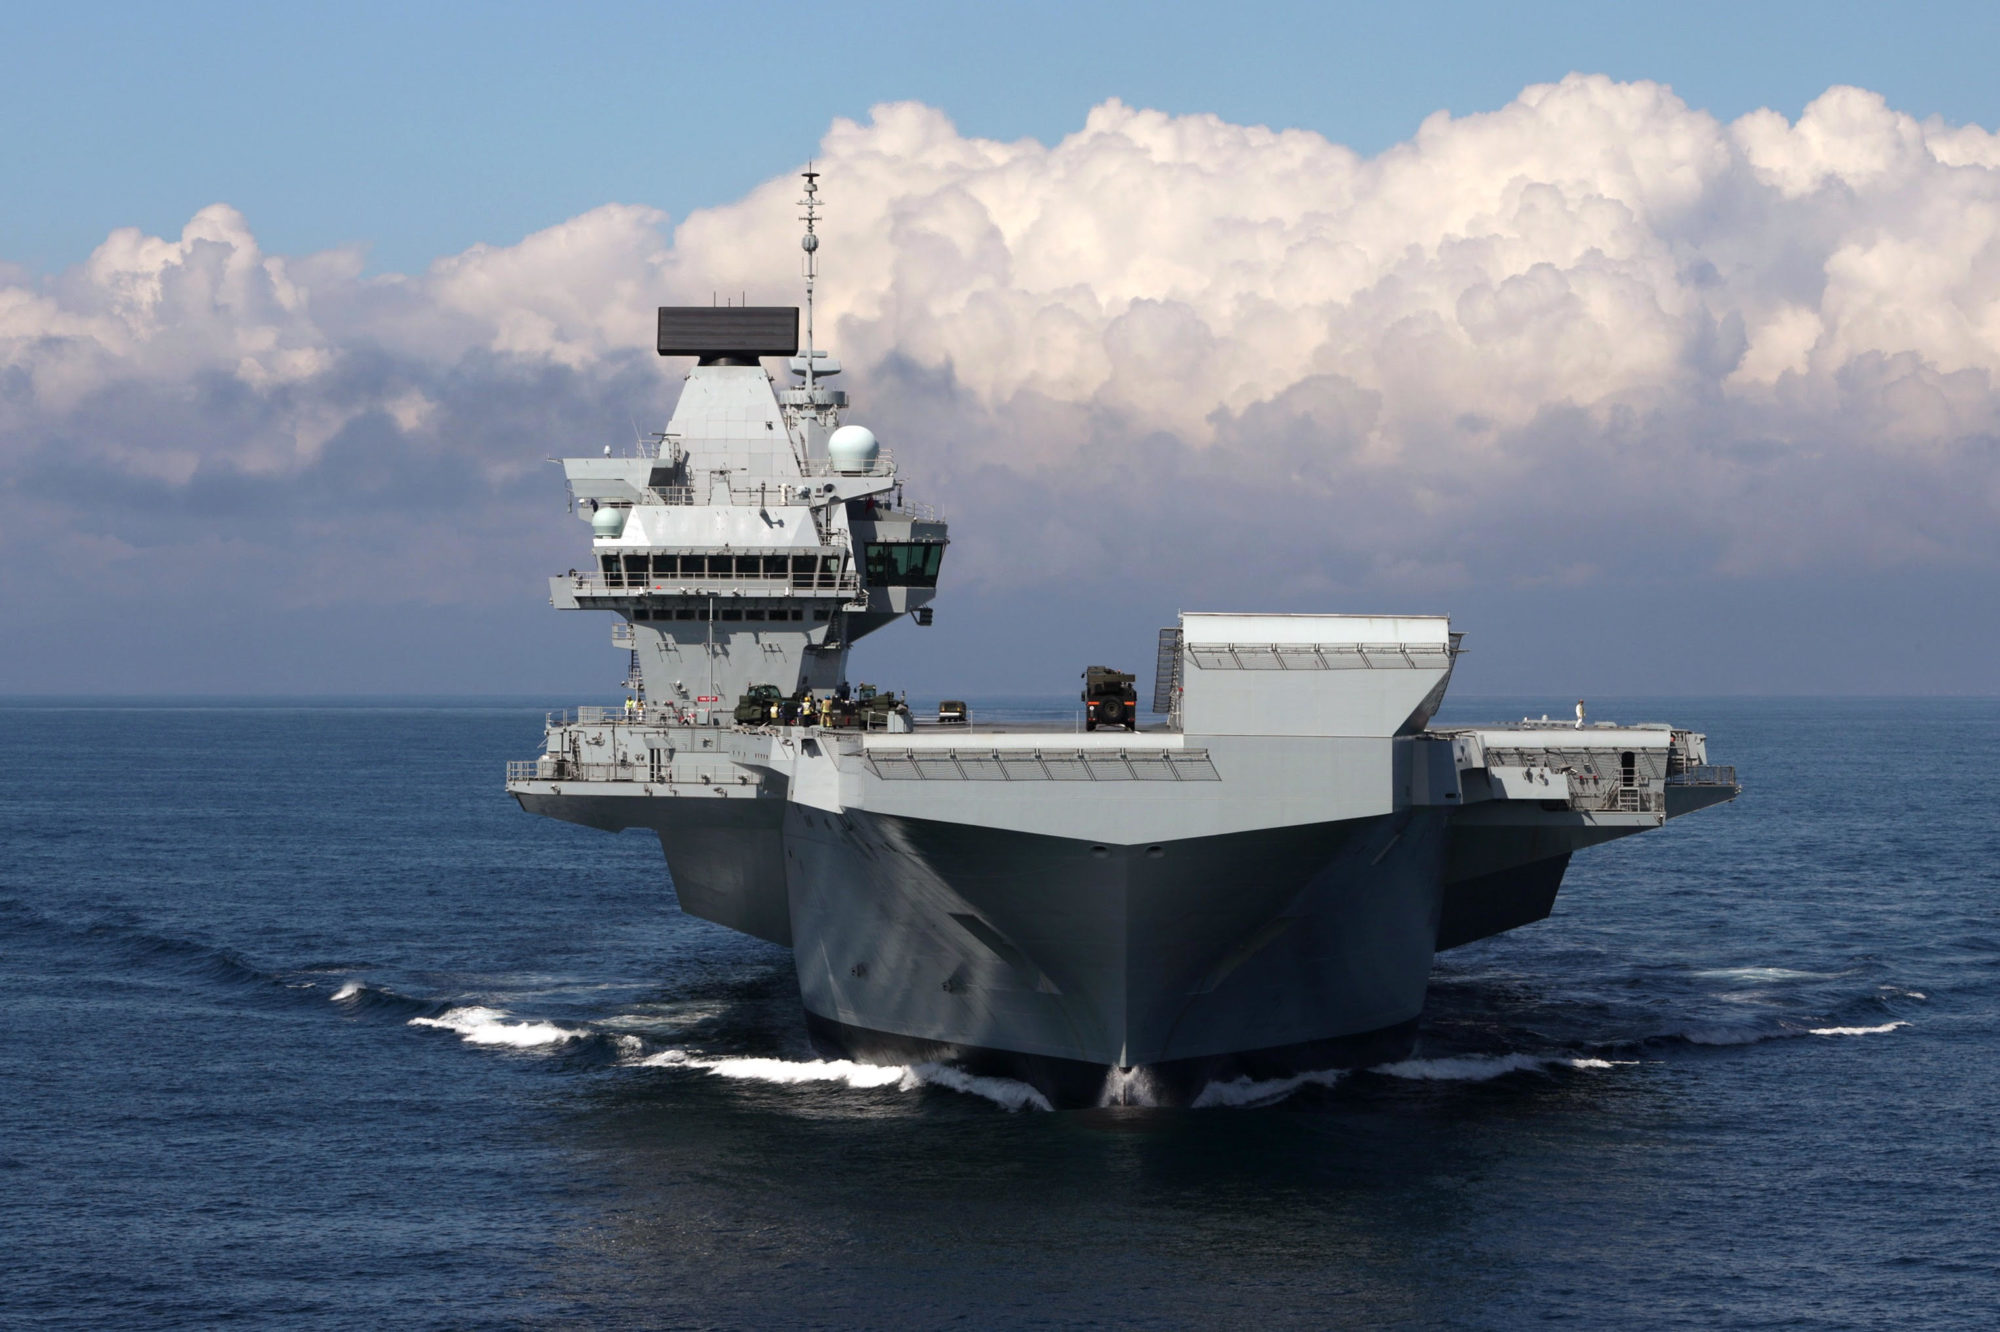 HMS Queen Elizabeth conducts sea trials off the coast of Scotland